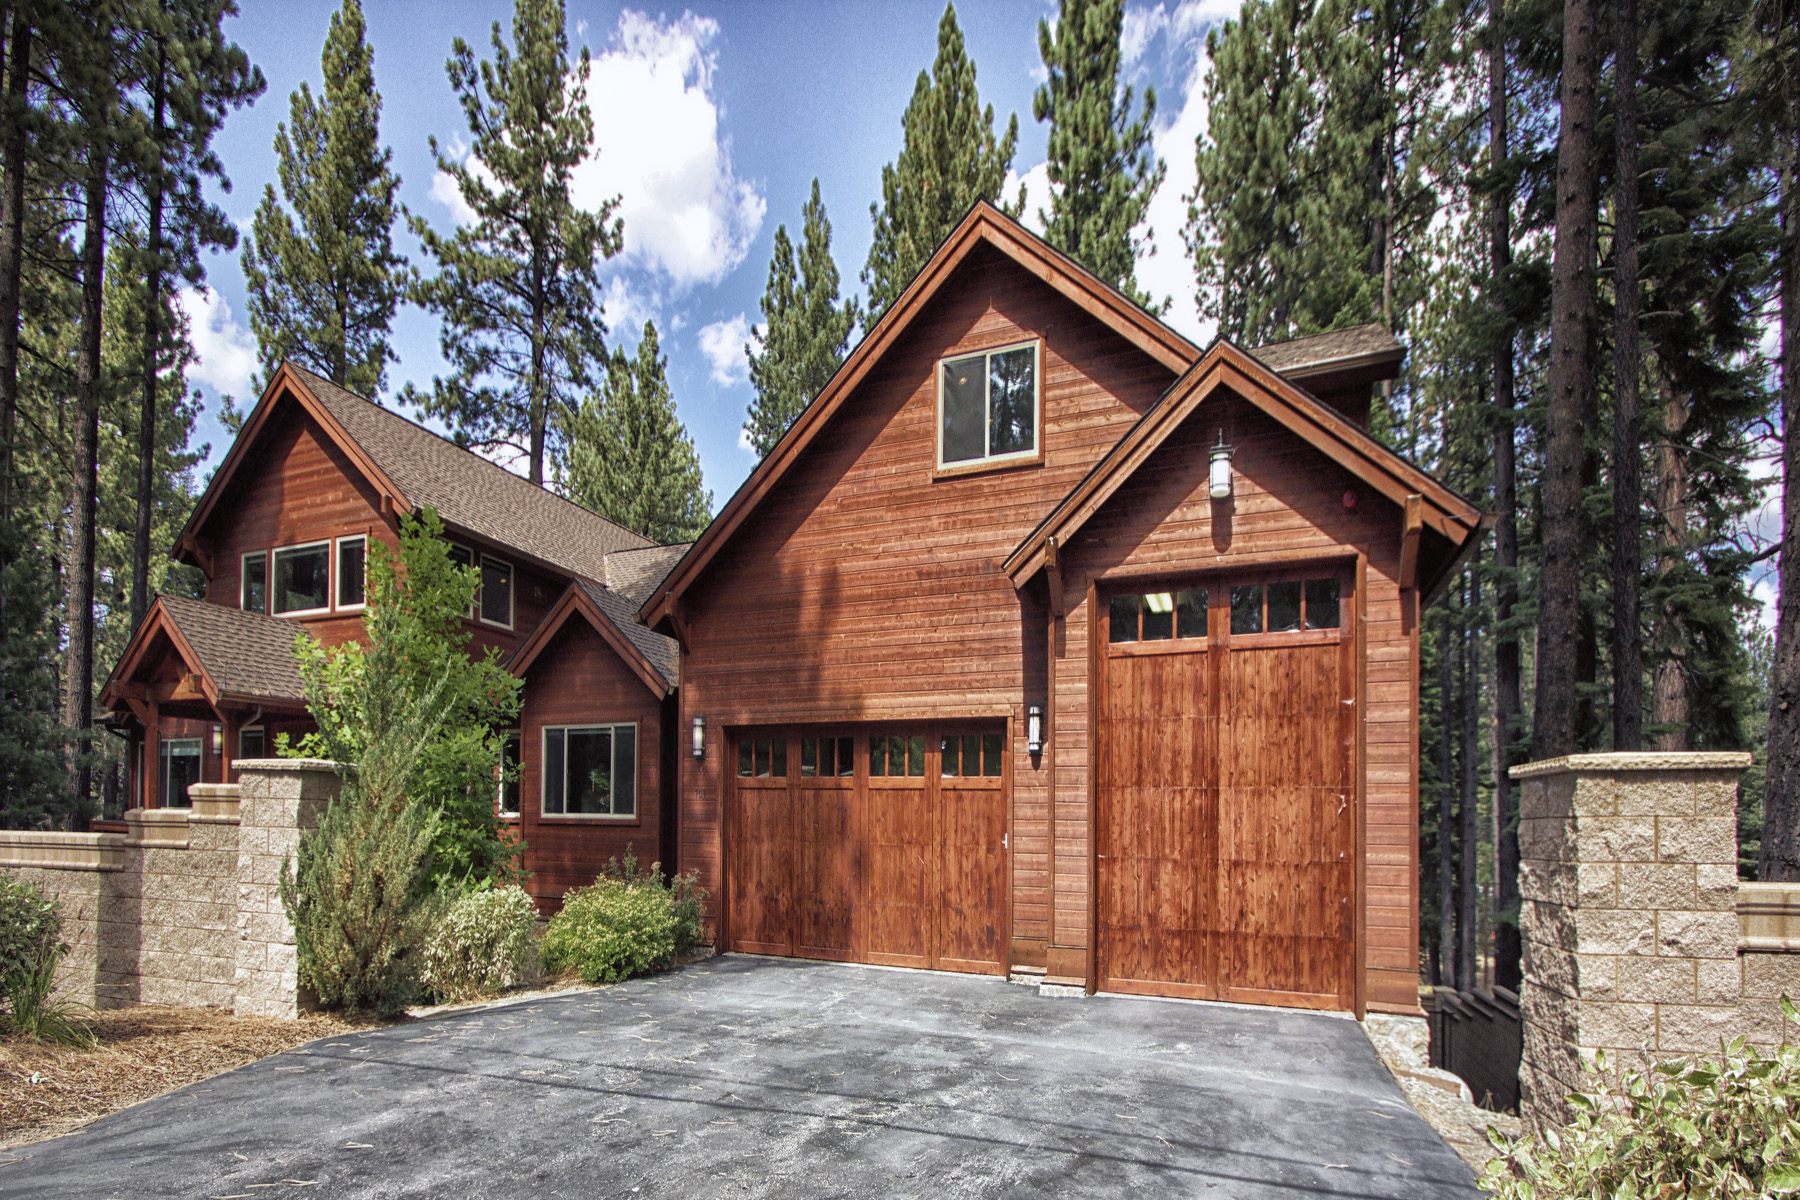 Single Family Home for Active at 703 Roger Avenue South Lake Tahoe, California 96150 United States